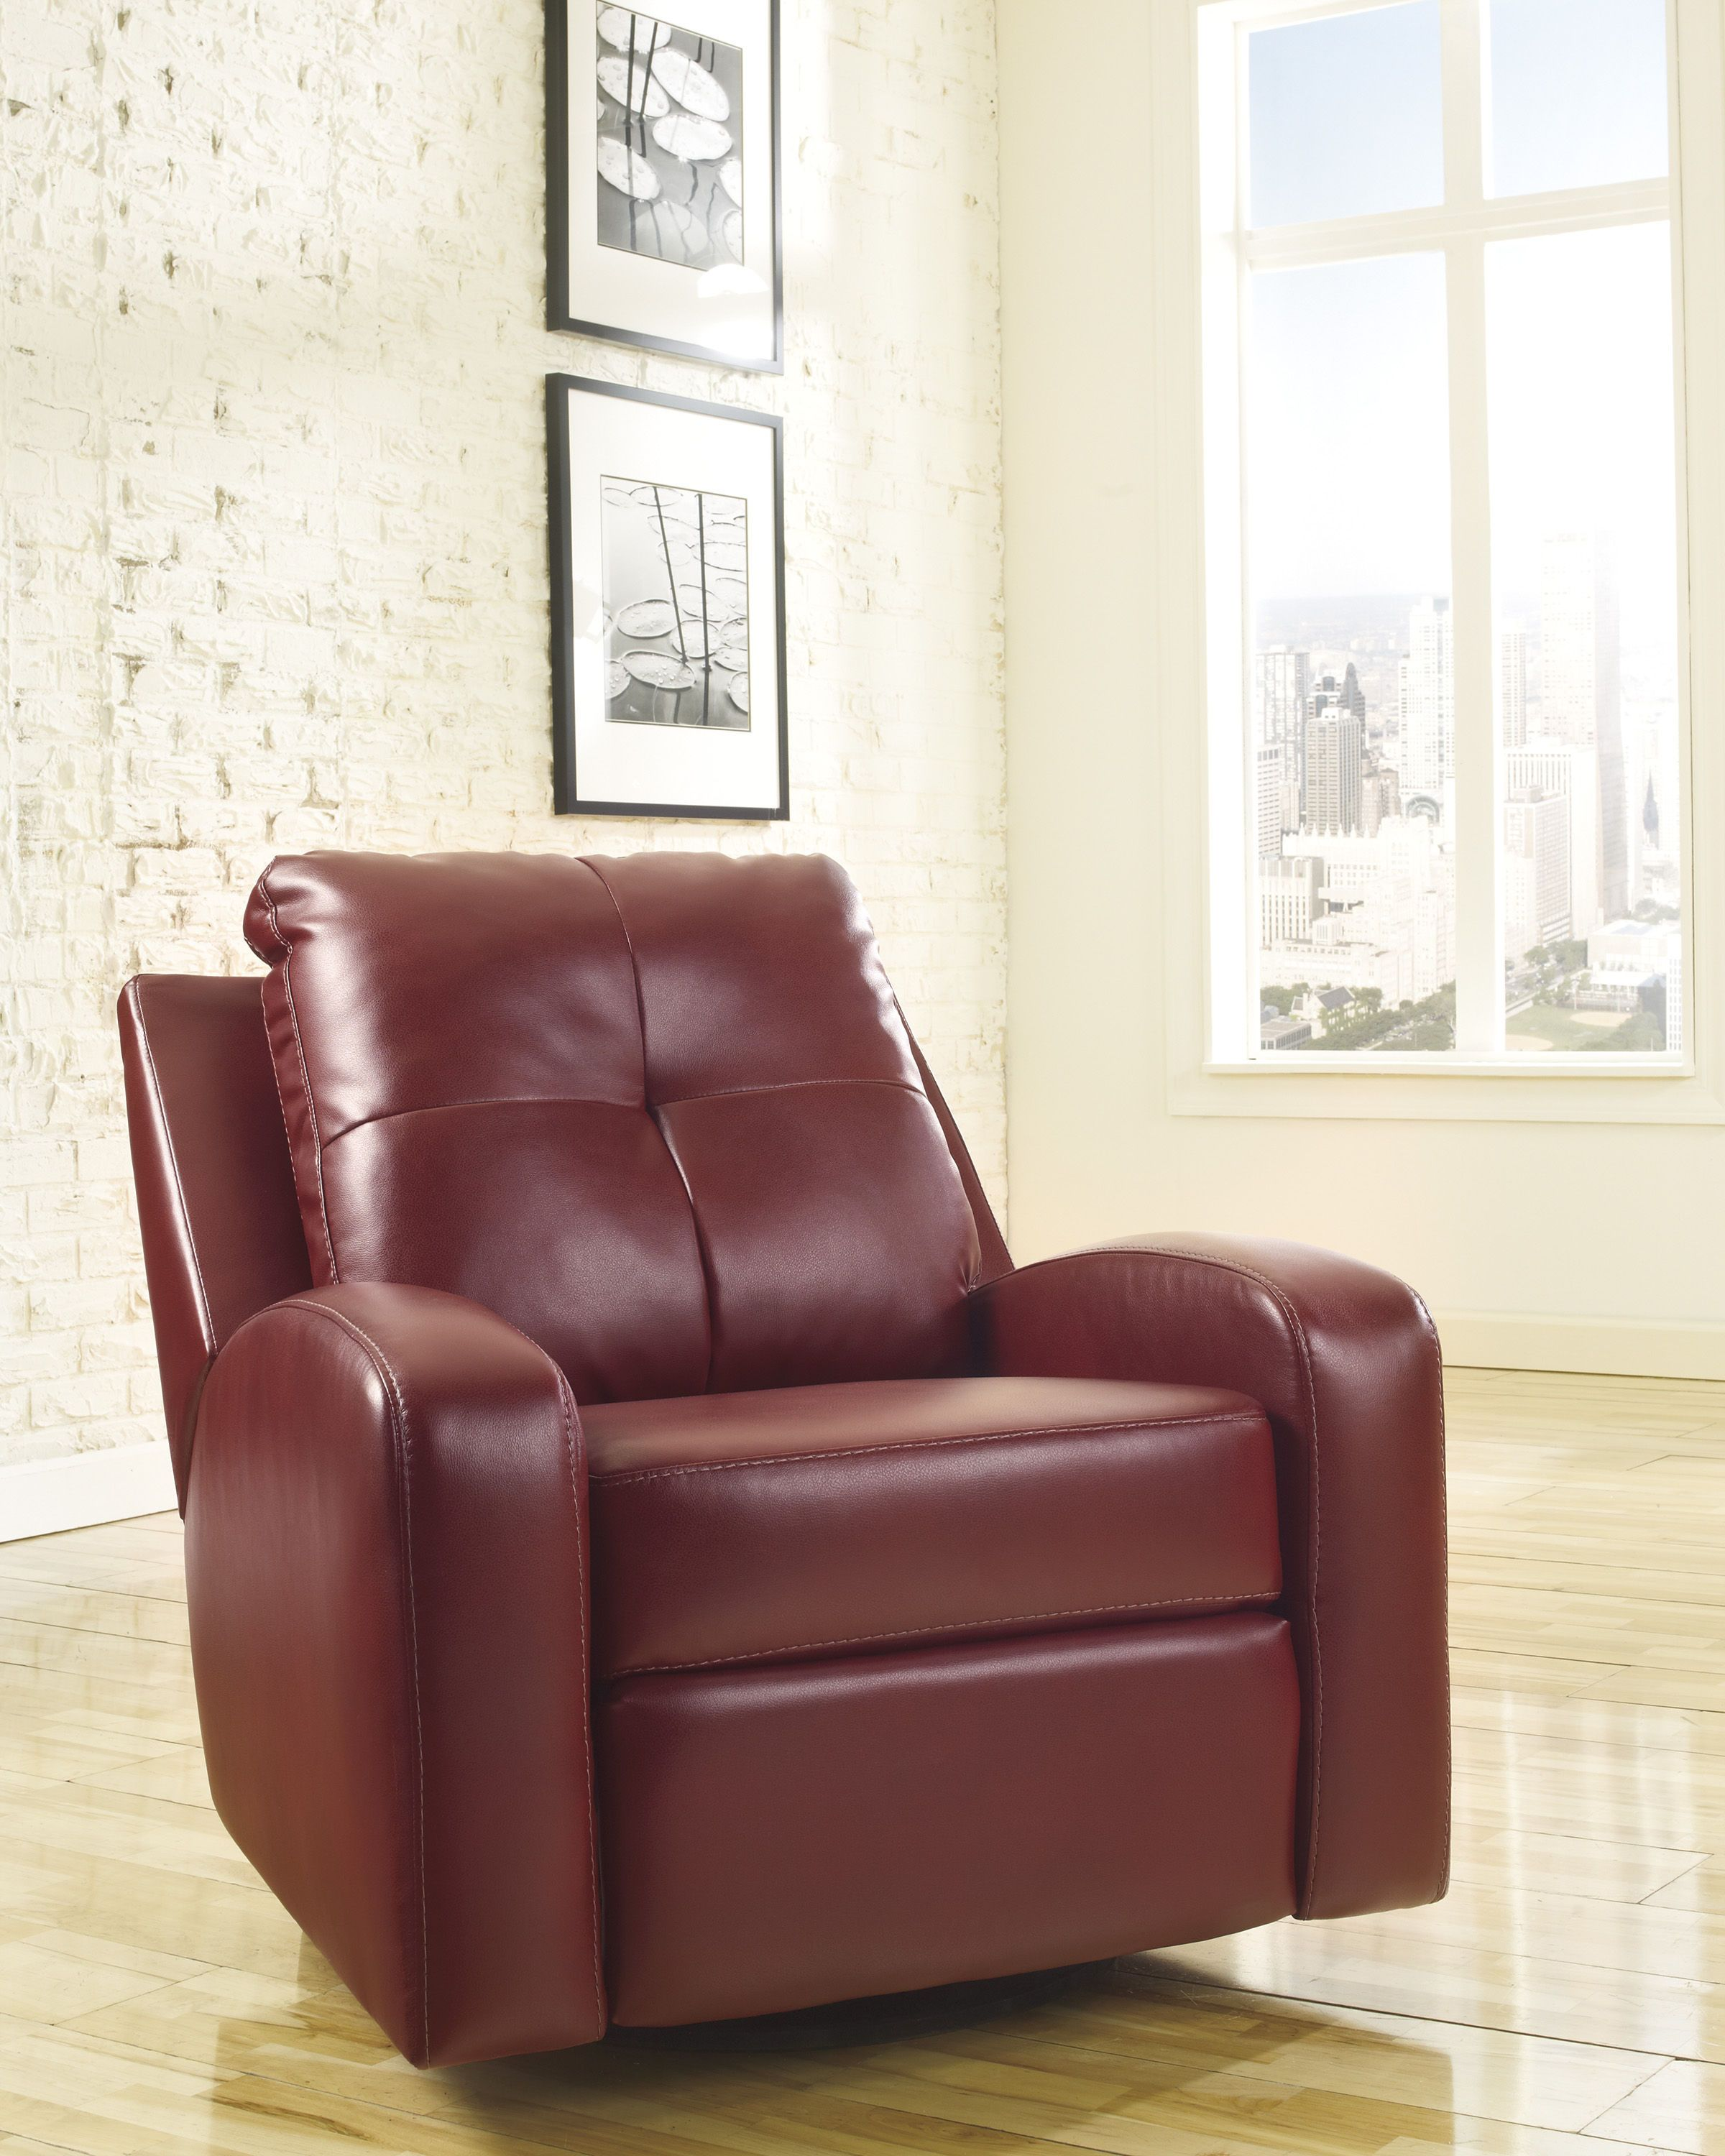 Wondrous Mannix Durablend Red Leather Pu Swivel Glider Recliner Creativecarmelina Interior Chair Design Creativecarmelinacom